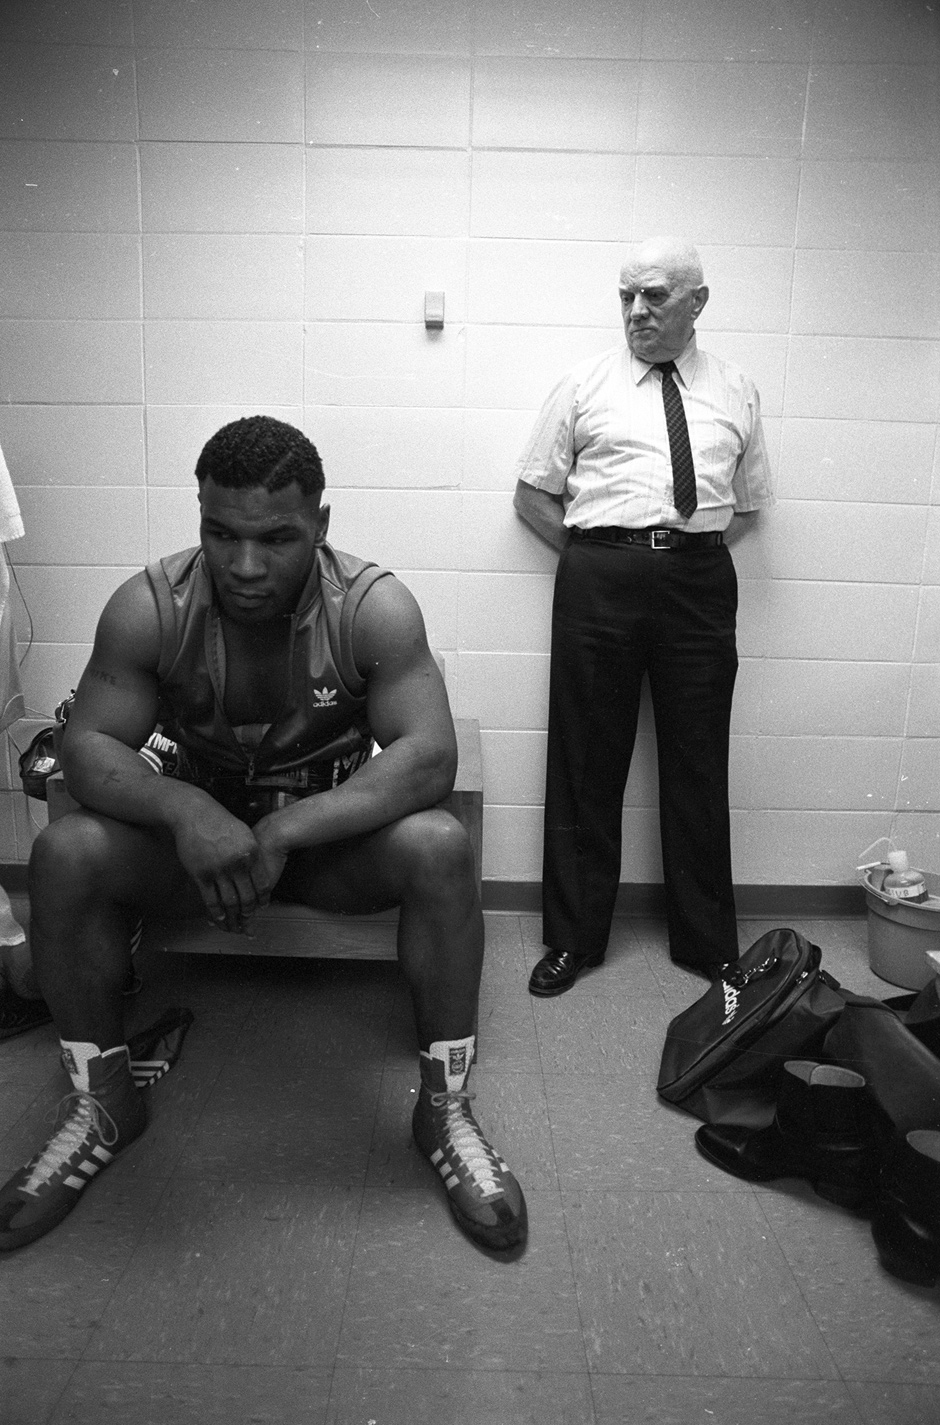 Mike Tyson and his trainer, Cus D'Amato, before Tyson's first professional fight, Albany, New York, 1985